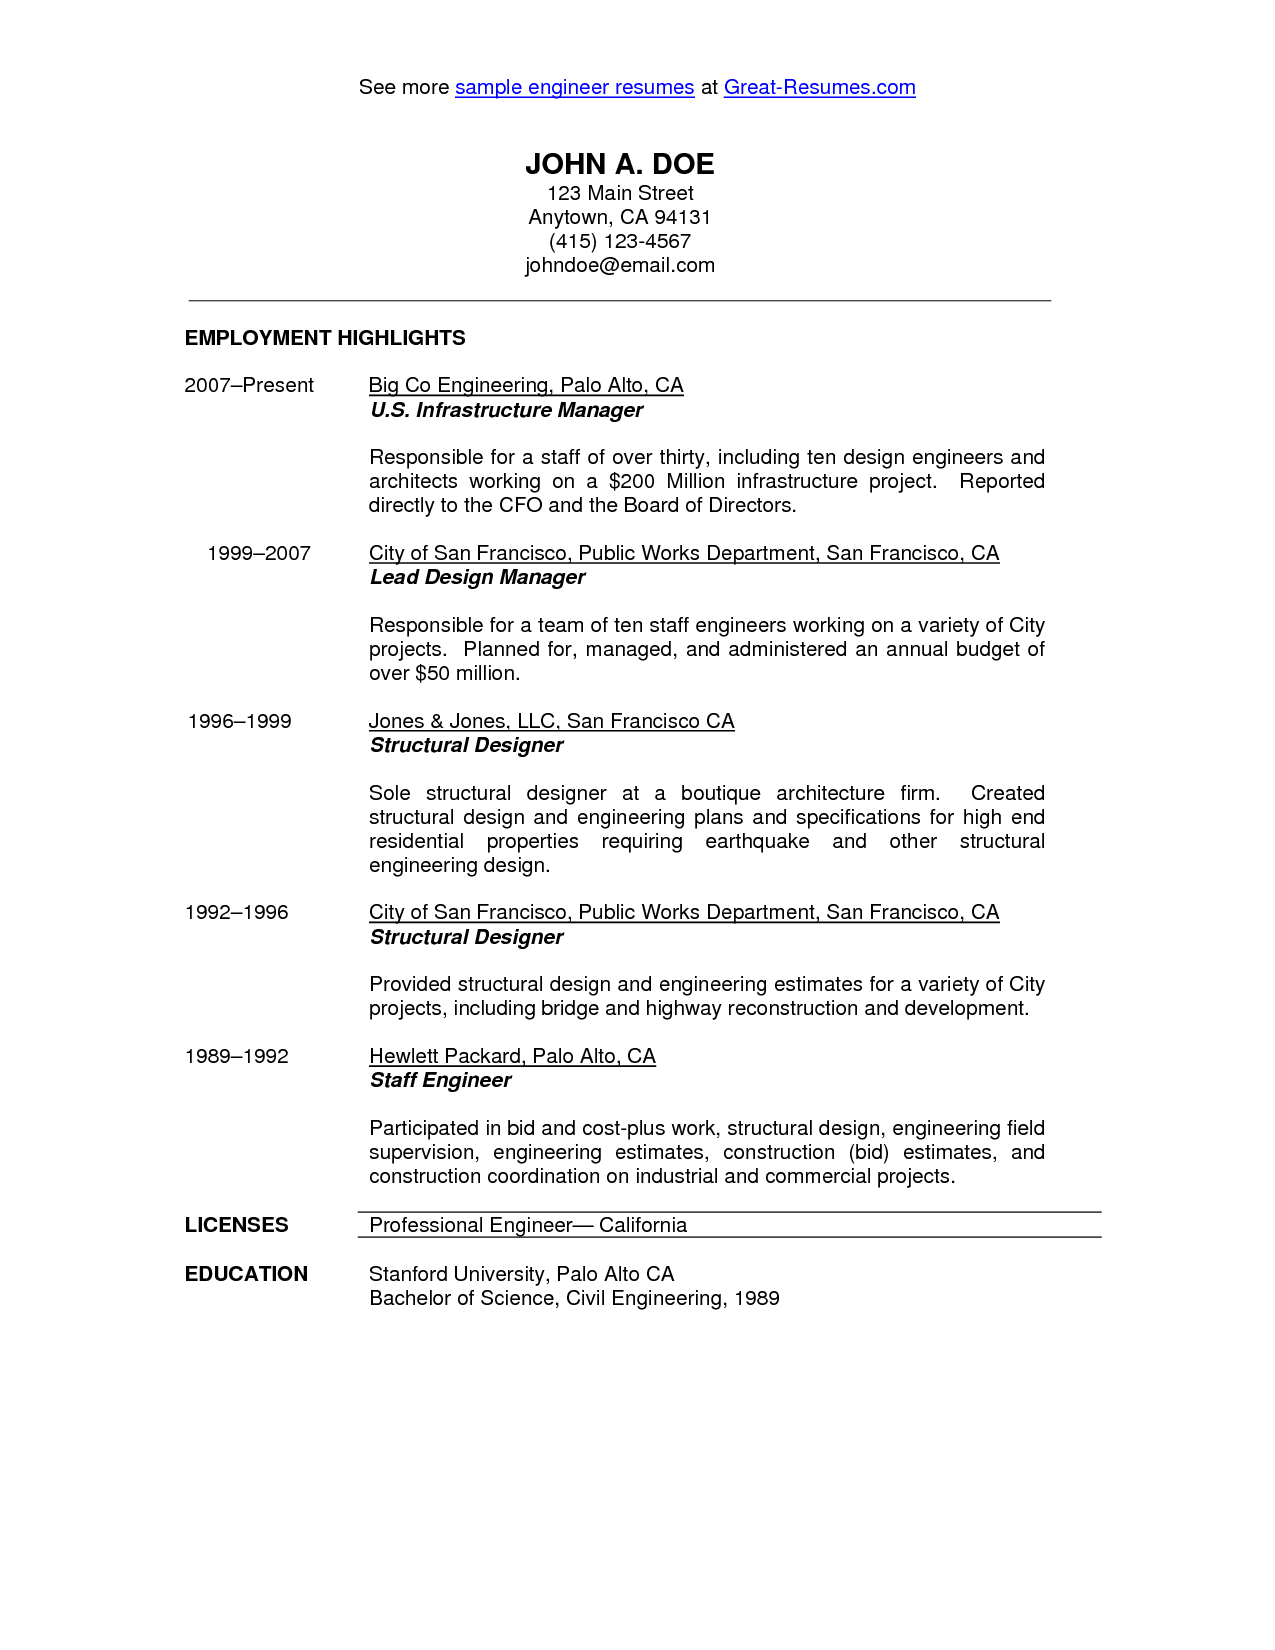 Civil Engineer Resume Sample o civil